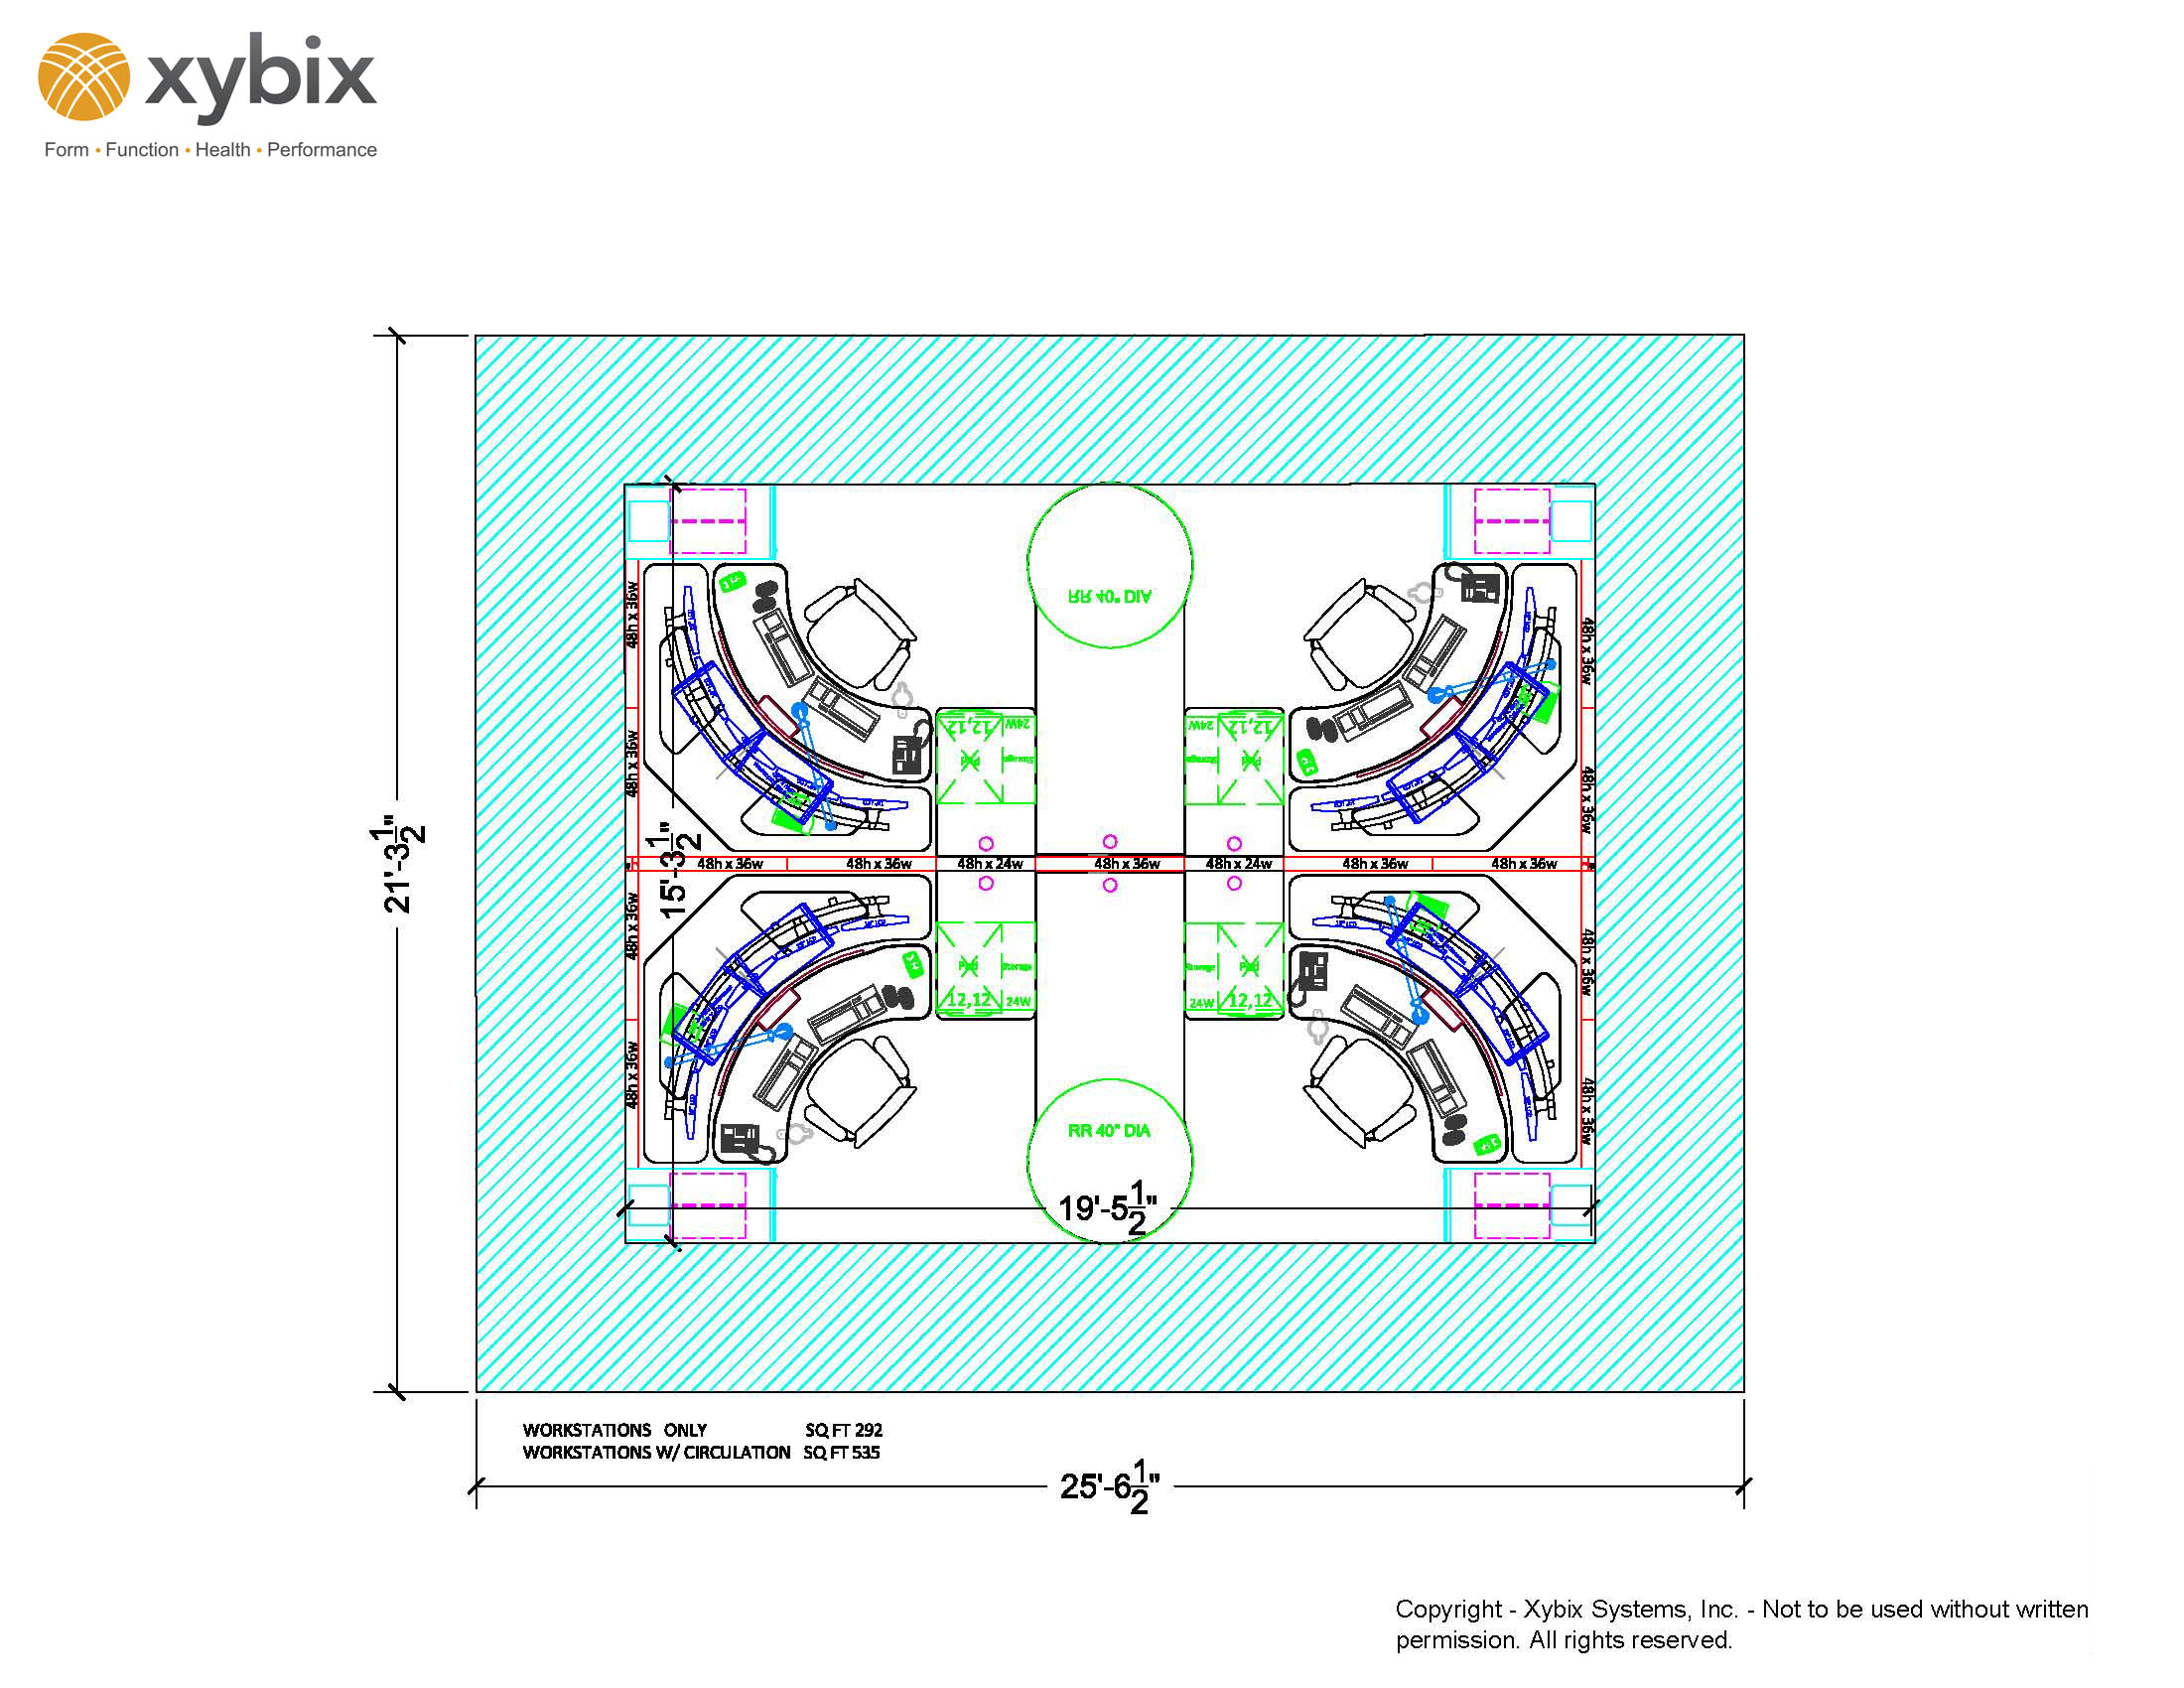 Xybix Typical Layout Ex1